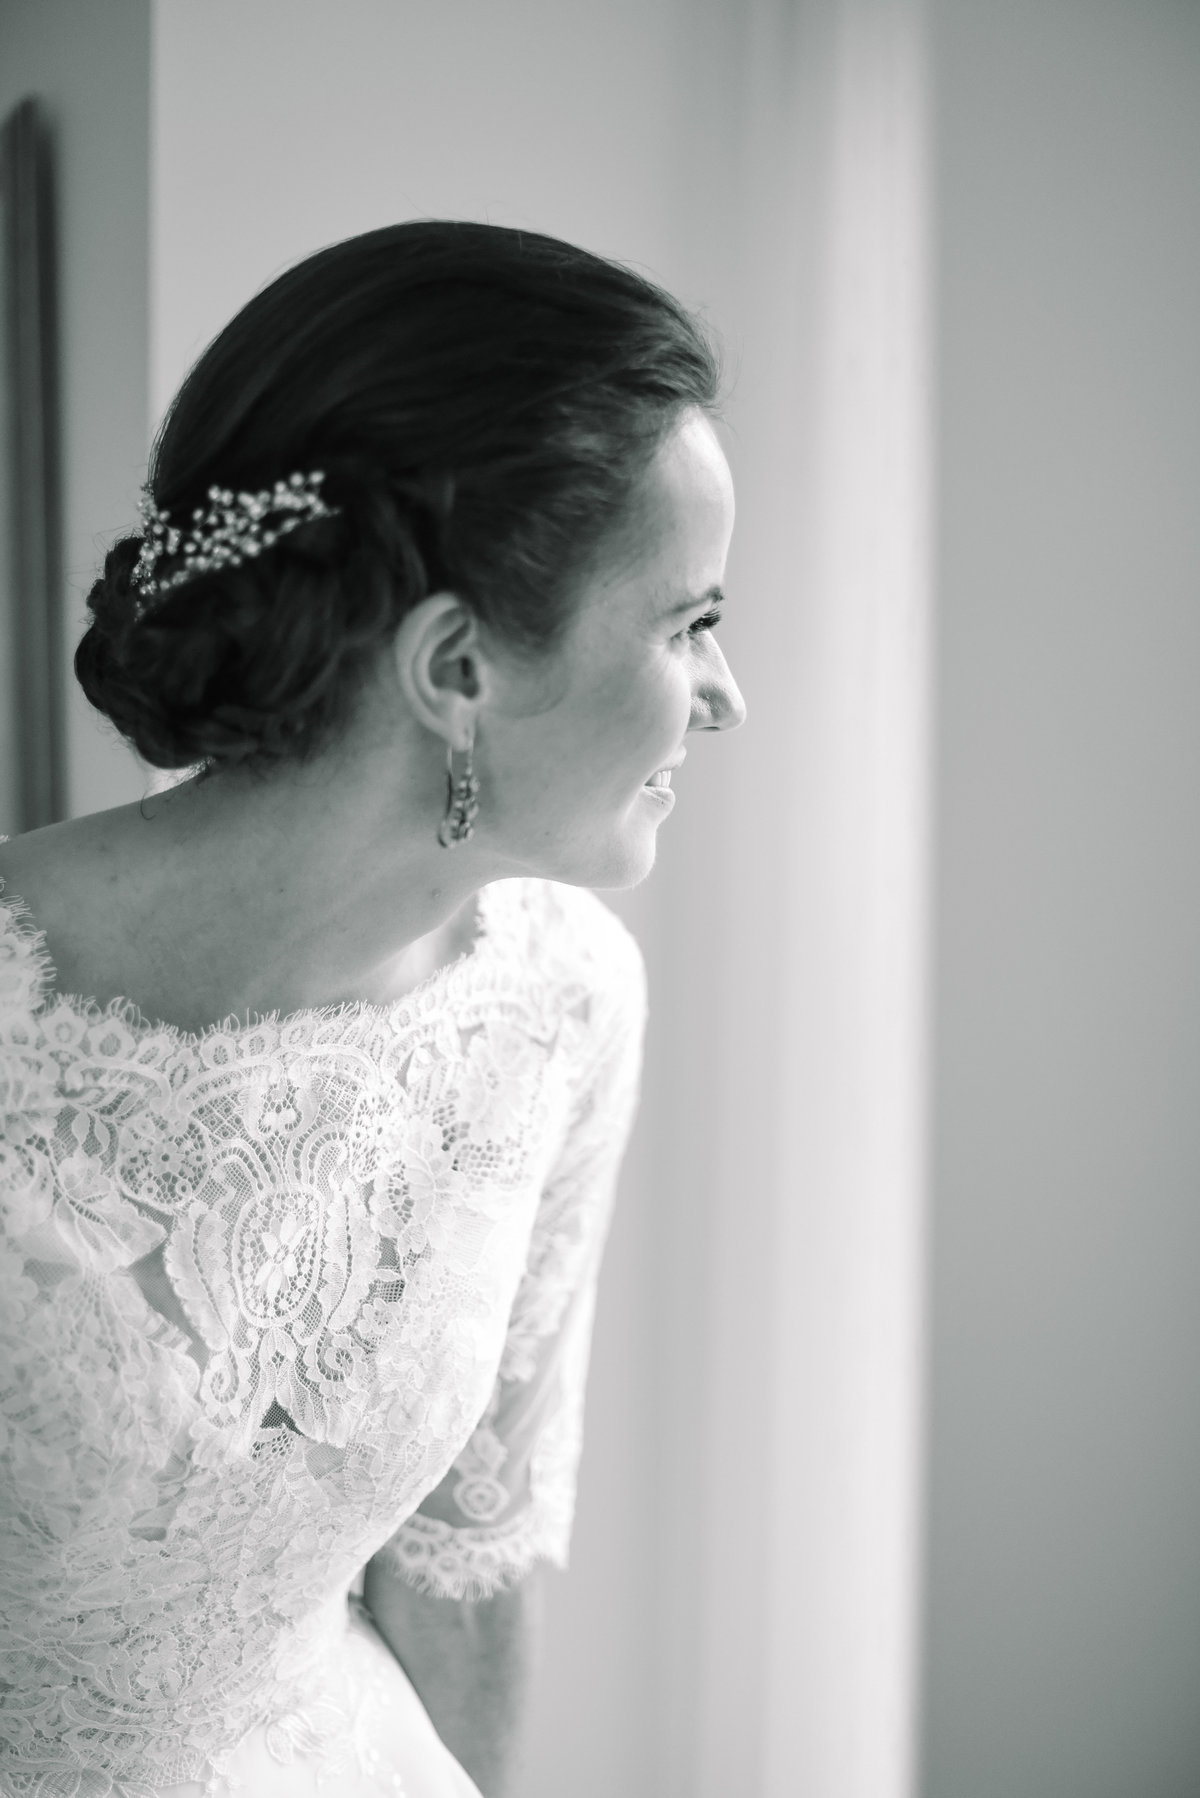 Bride looks out window before getting ready